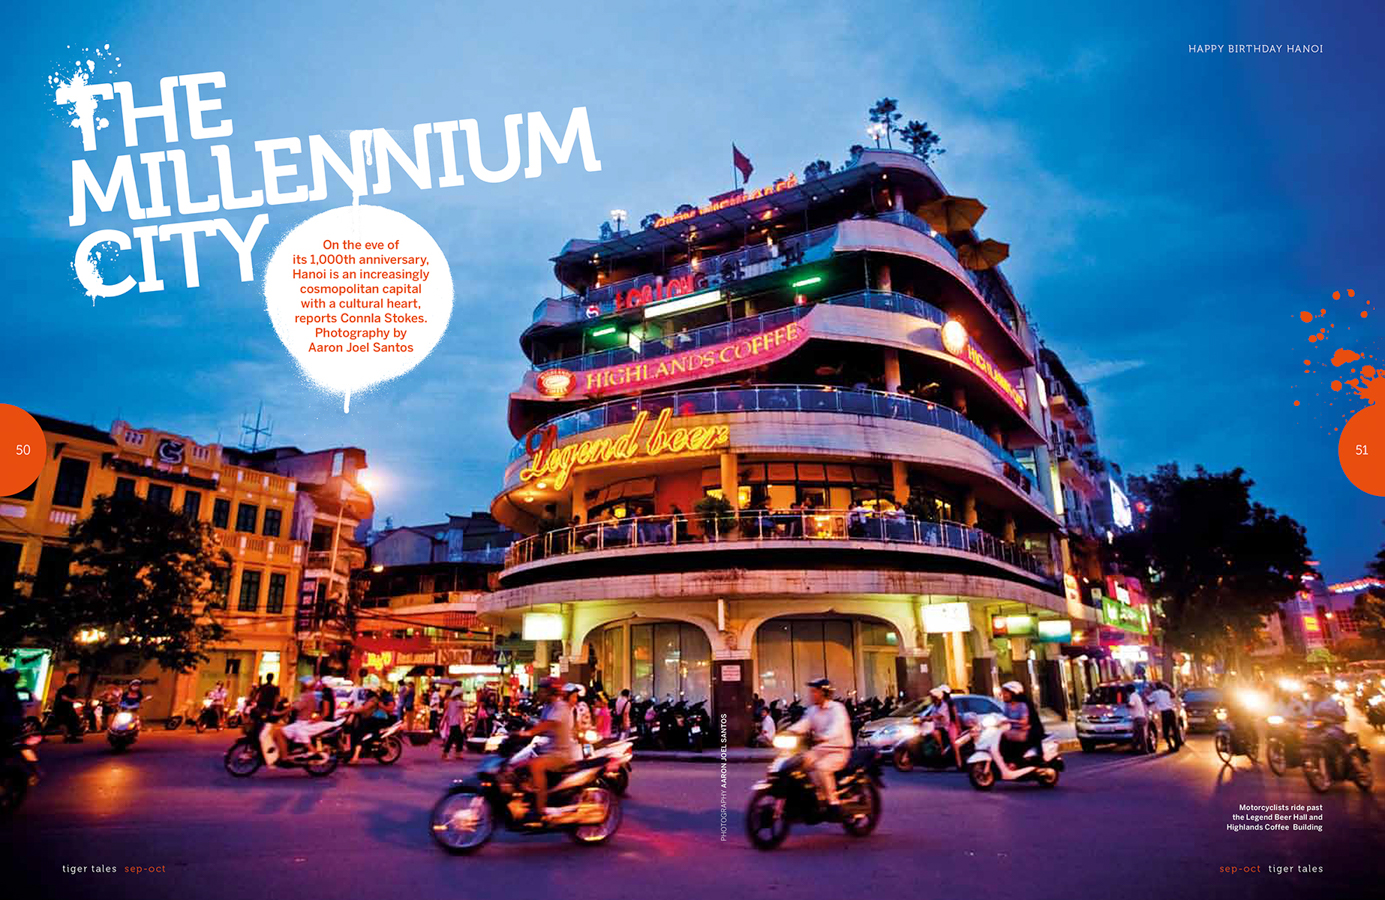 A feature travel story on the 1000-year anniversary of Vietnam's capital city.